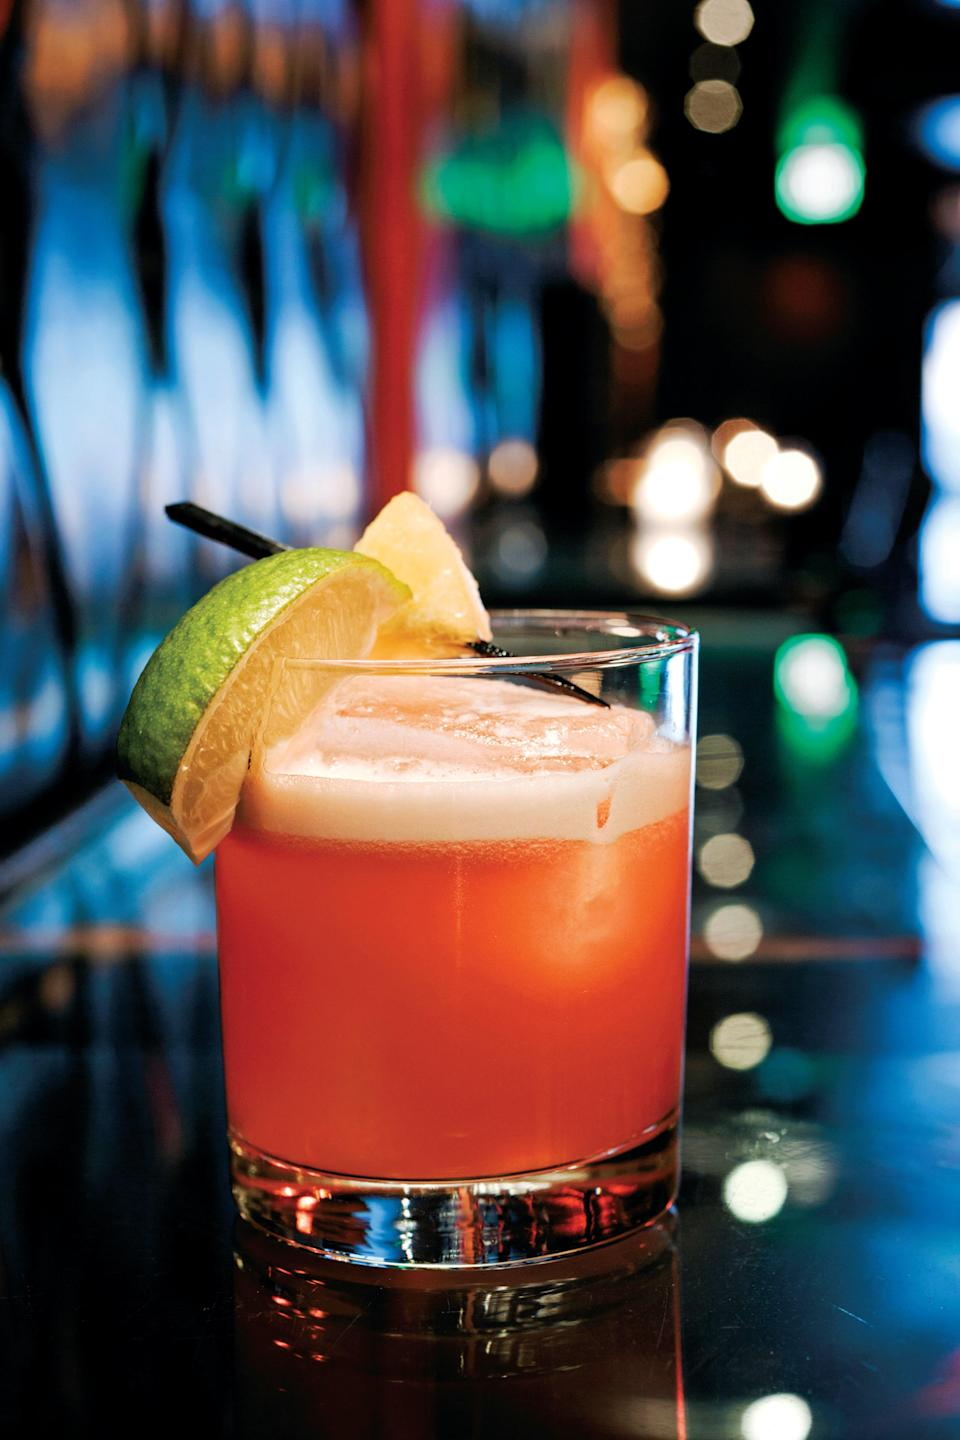 """This easy tiki cocktail is in our hall of fame. It's refreshing and balanced and juicy, thanks to a pour of bitter Campari and fresh pineapple in the mix. Do not let another week go by without trying one. <a href=""""https://www.epicurious.com/recipes/food/views/jungle-bird-cocktail-rum-amaro?mbid=synd_yahoo_rss"""" rel=""""nofollow noopener"""" target=""""_blank"""" data-ylk=""""slk:See recipe."""" class=""""link rapid-noclick-resp"""">See recipe.</a>"""